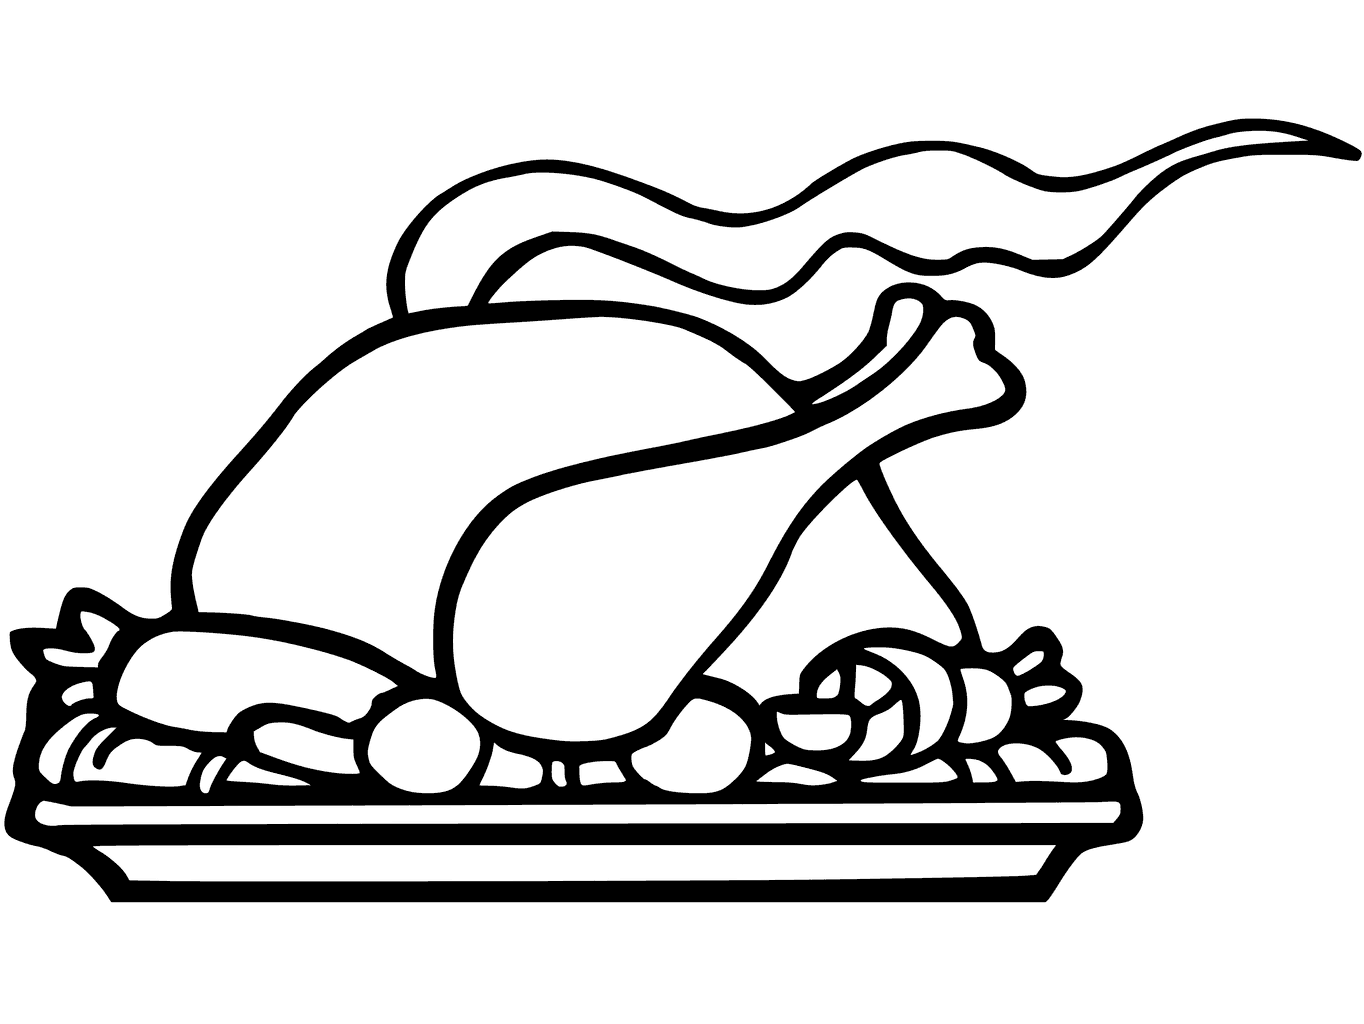 Turkey Dinner Drawing at GetDrawings.com | Free for personal use ...